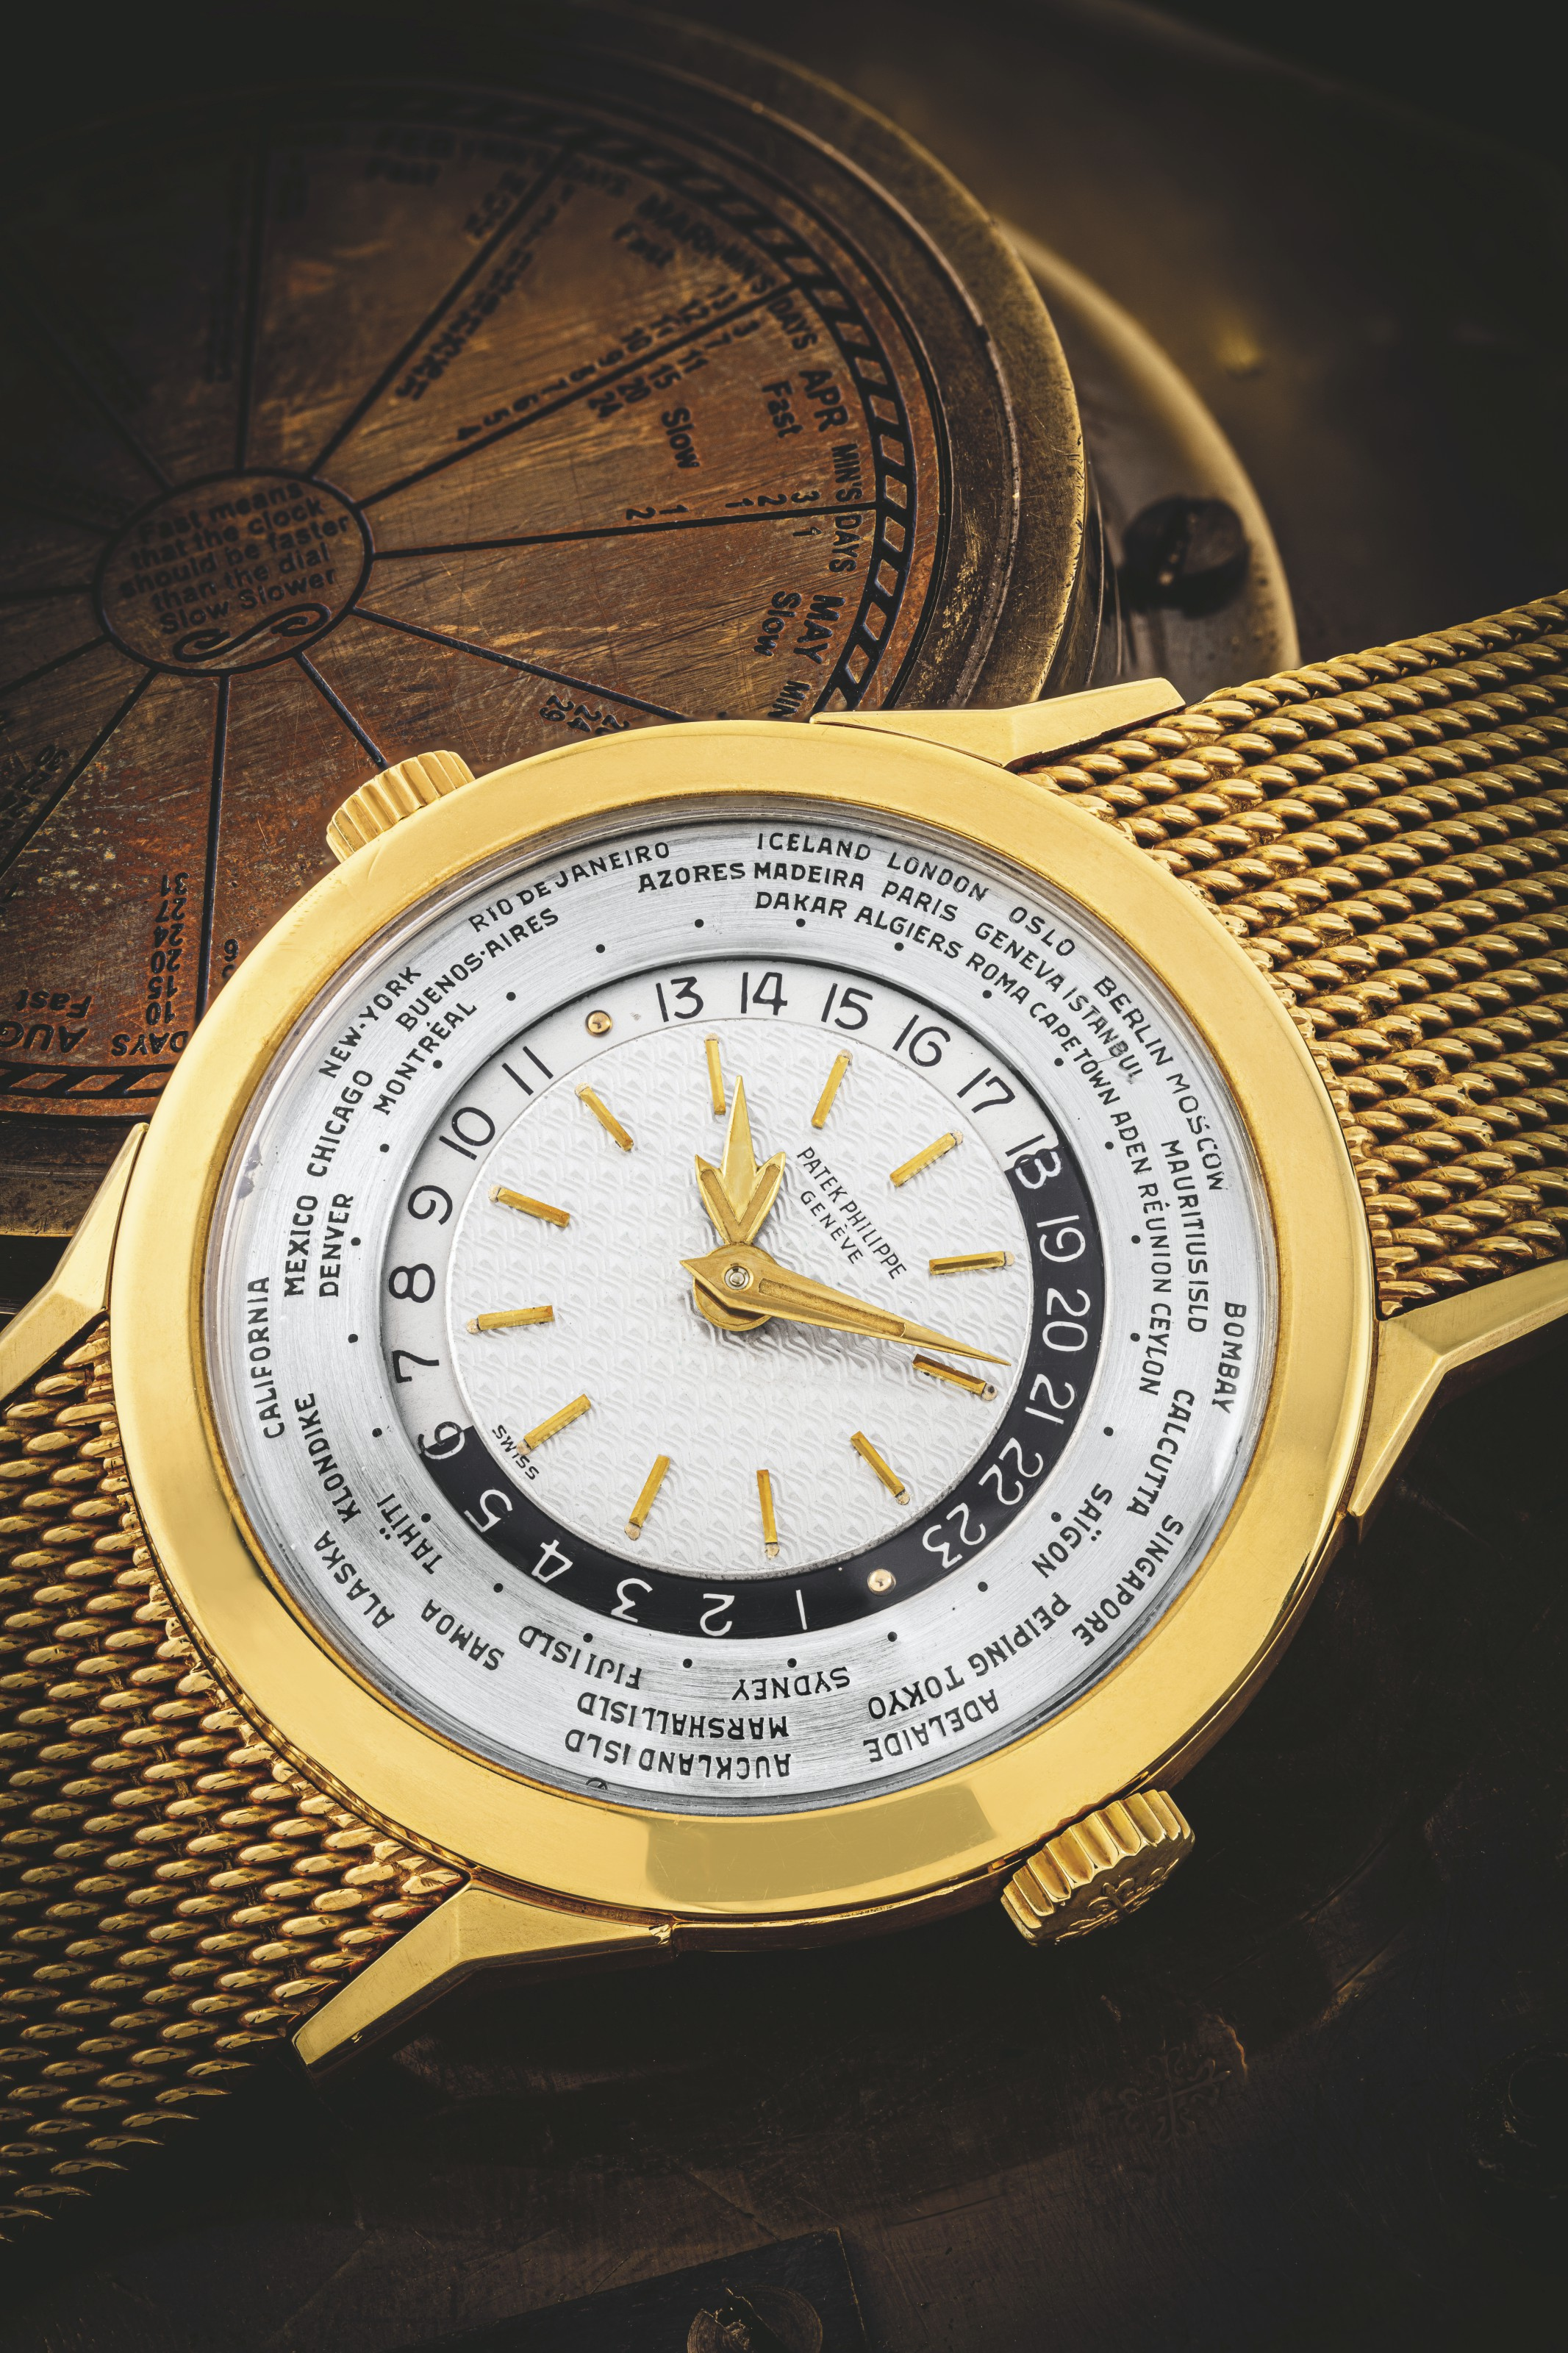 PATEK PHILIPPE. AN EXCEPTIONALLY RARE AND IMPORTANT 18K GOLD TWO CROWN WORLD TIME WRISTWATCH WITH 24 HOUR INDICATION AND BRACELET